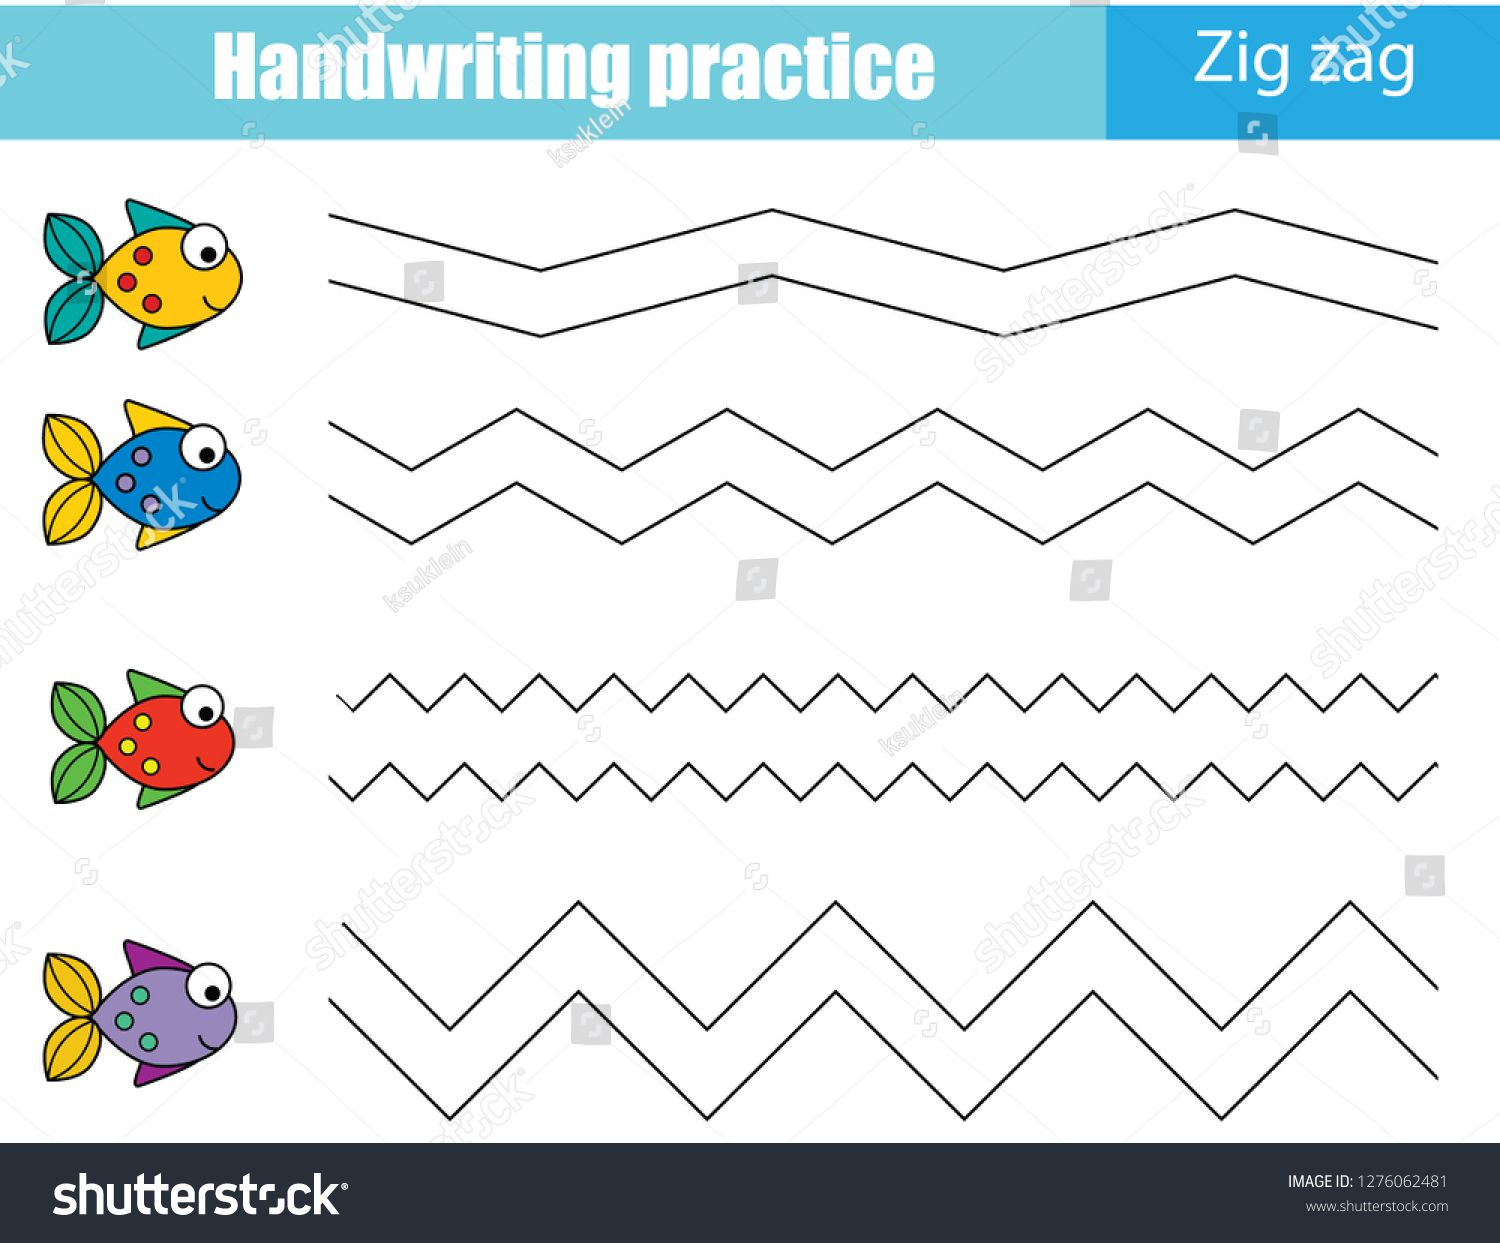 Pin By Victoria Leiva On Worksheets In